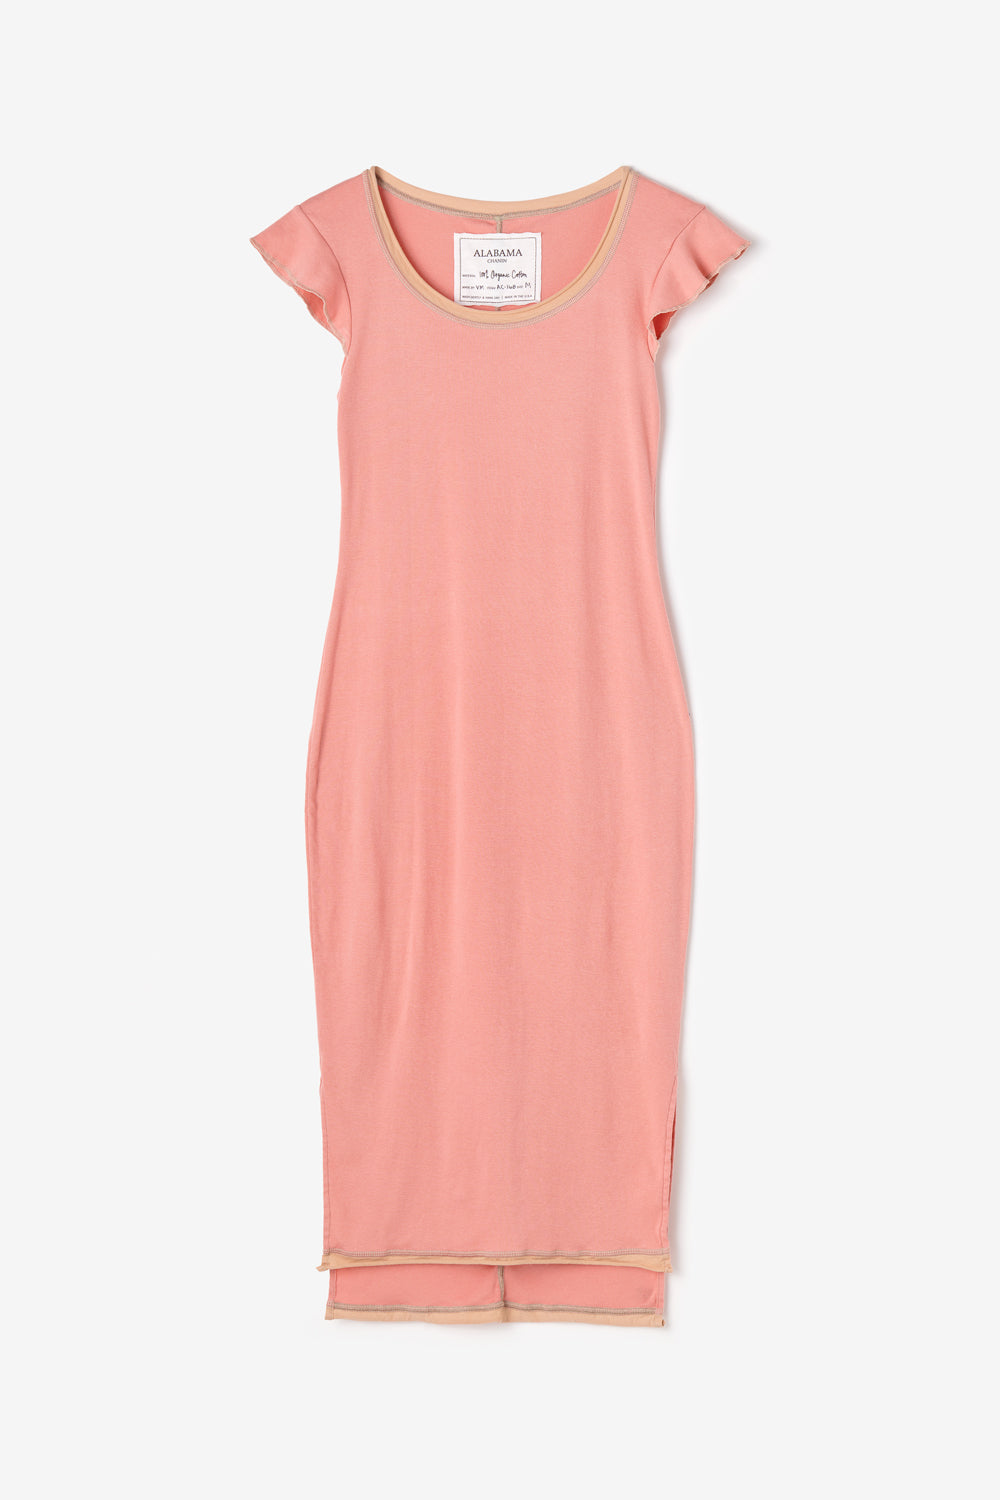 Alabama Chanin Felicity Dress Organic Cotton Dress with Scoop Neckline and Flutter Sleeves in Sunset Rib